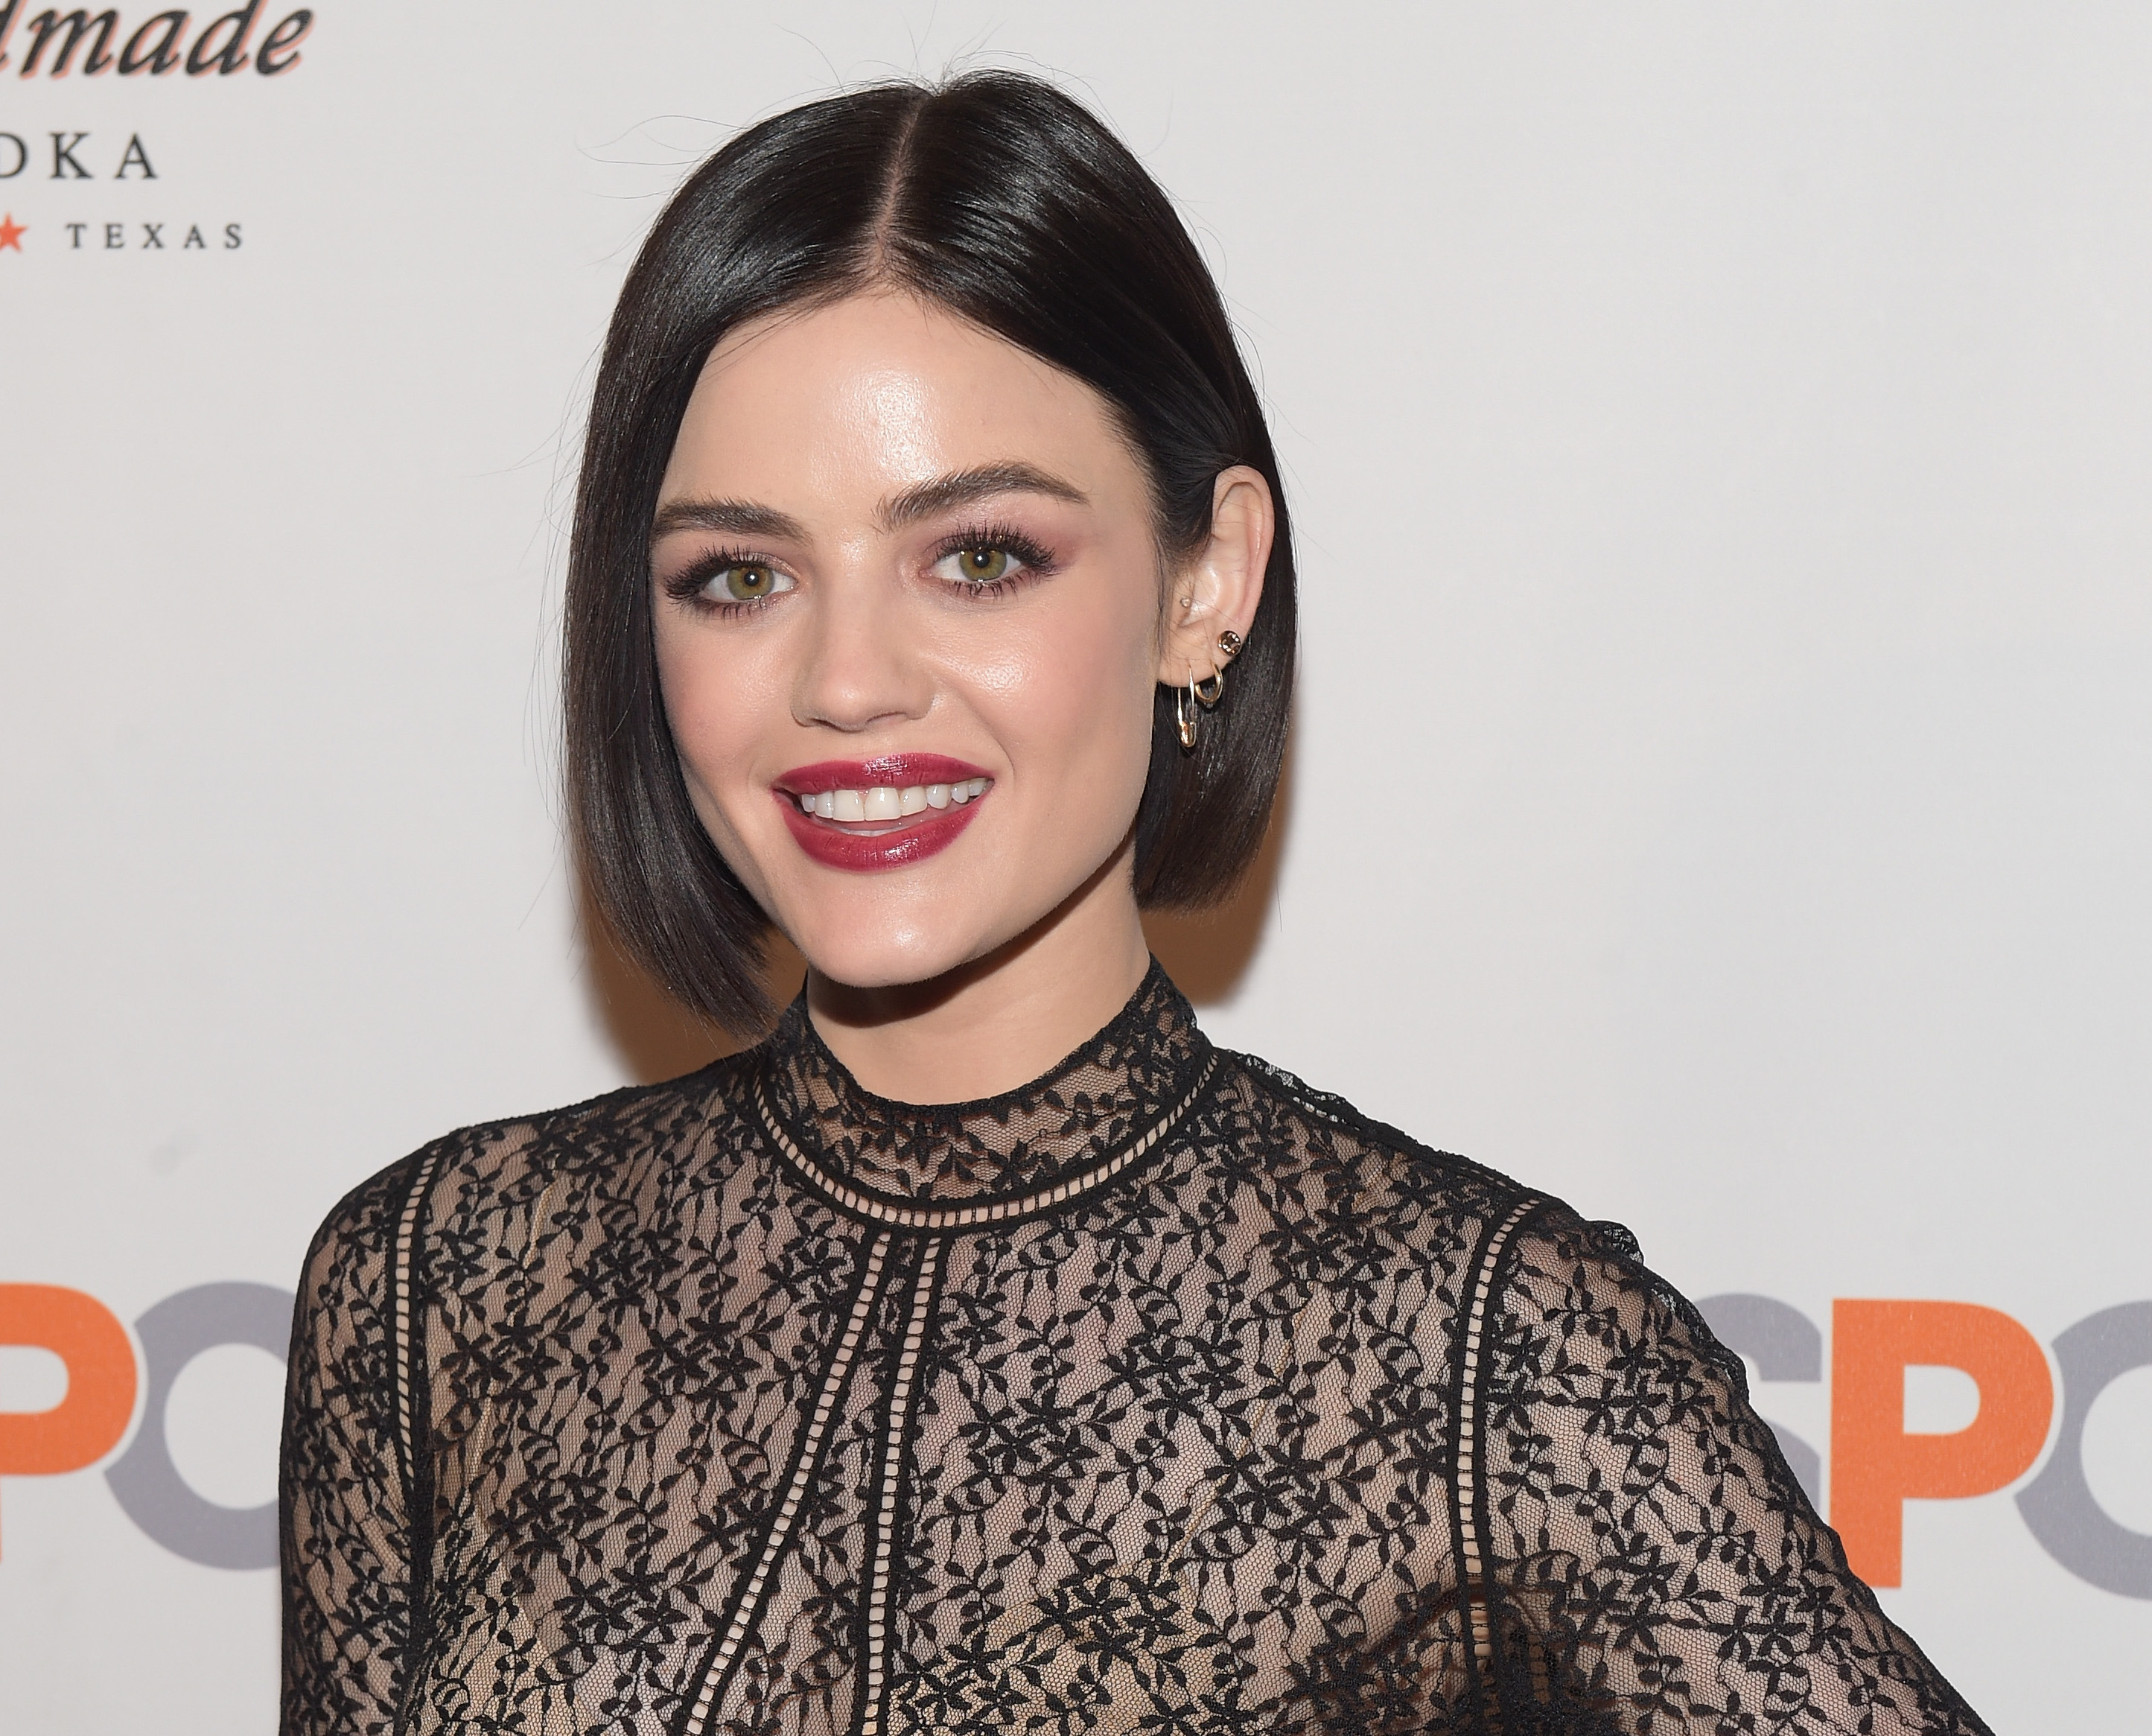 Lucy Hale used one of those insane bubble masks, and she looked like a beautiful alien